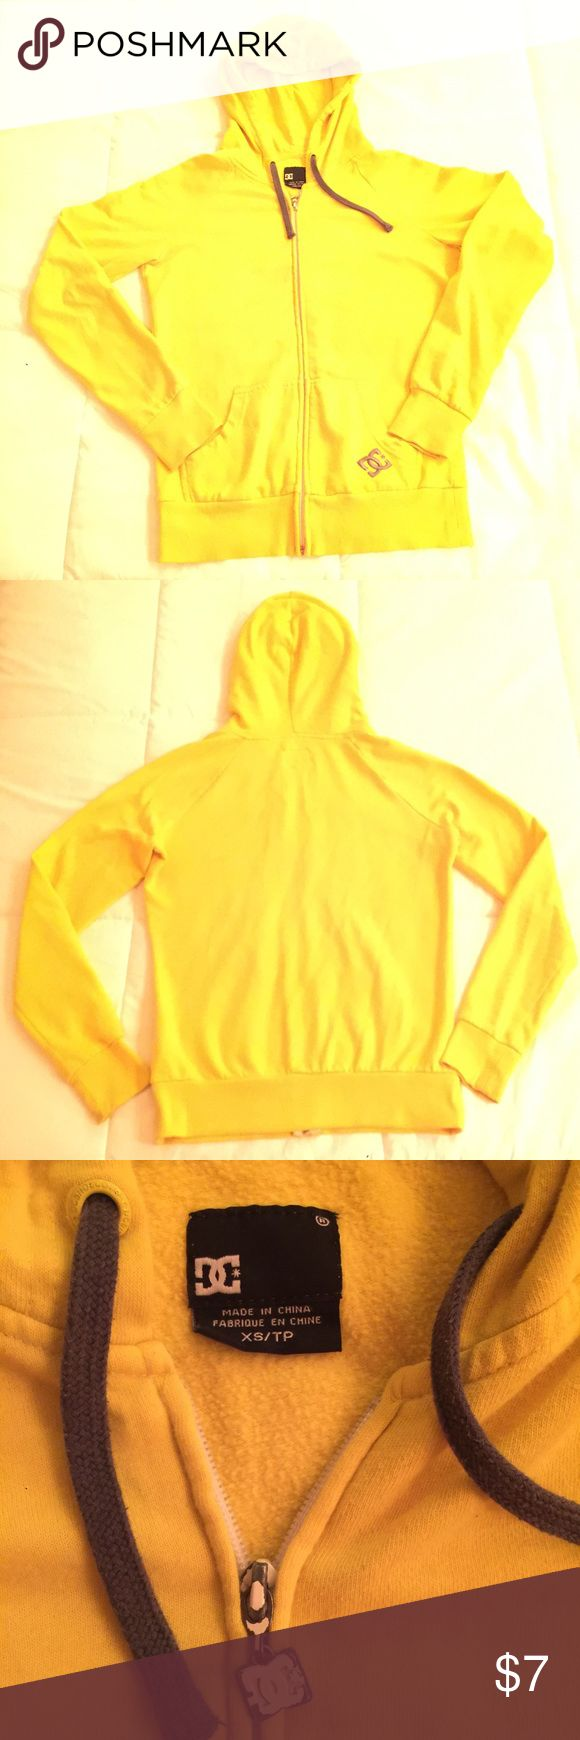 D.C. Yellow Pull Over Sweater. Yellow Zip Up Sweater with Hood. Hole under left arm shown in picture. DC Sweaters